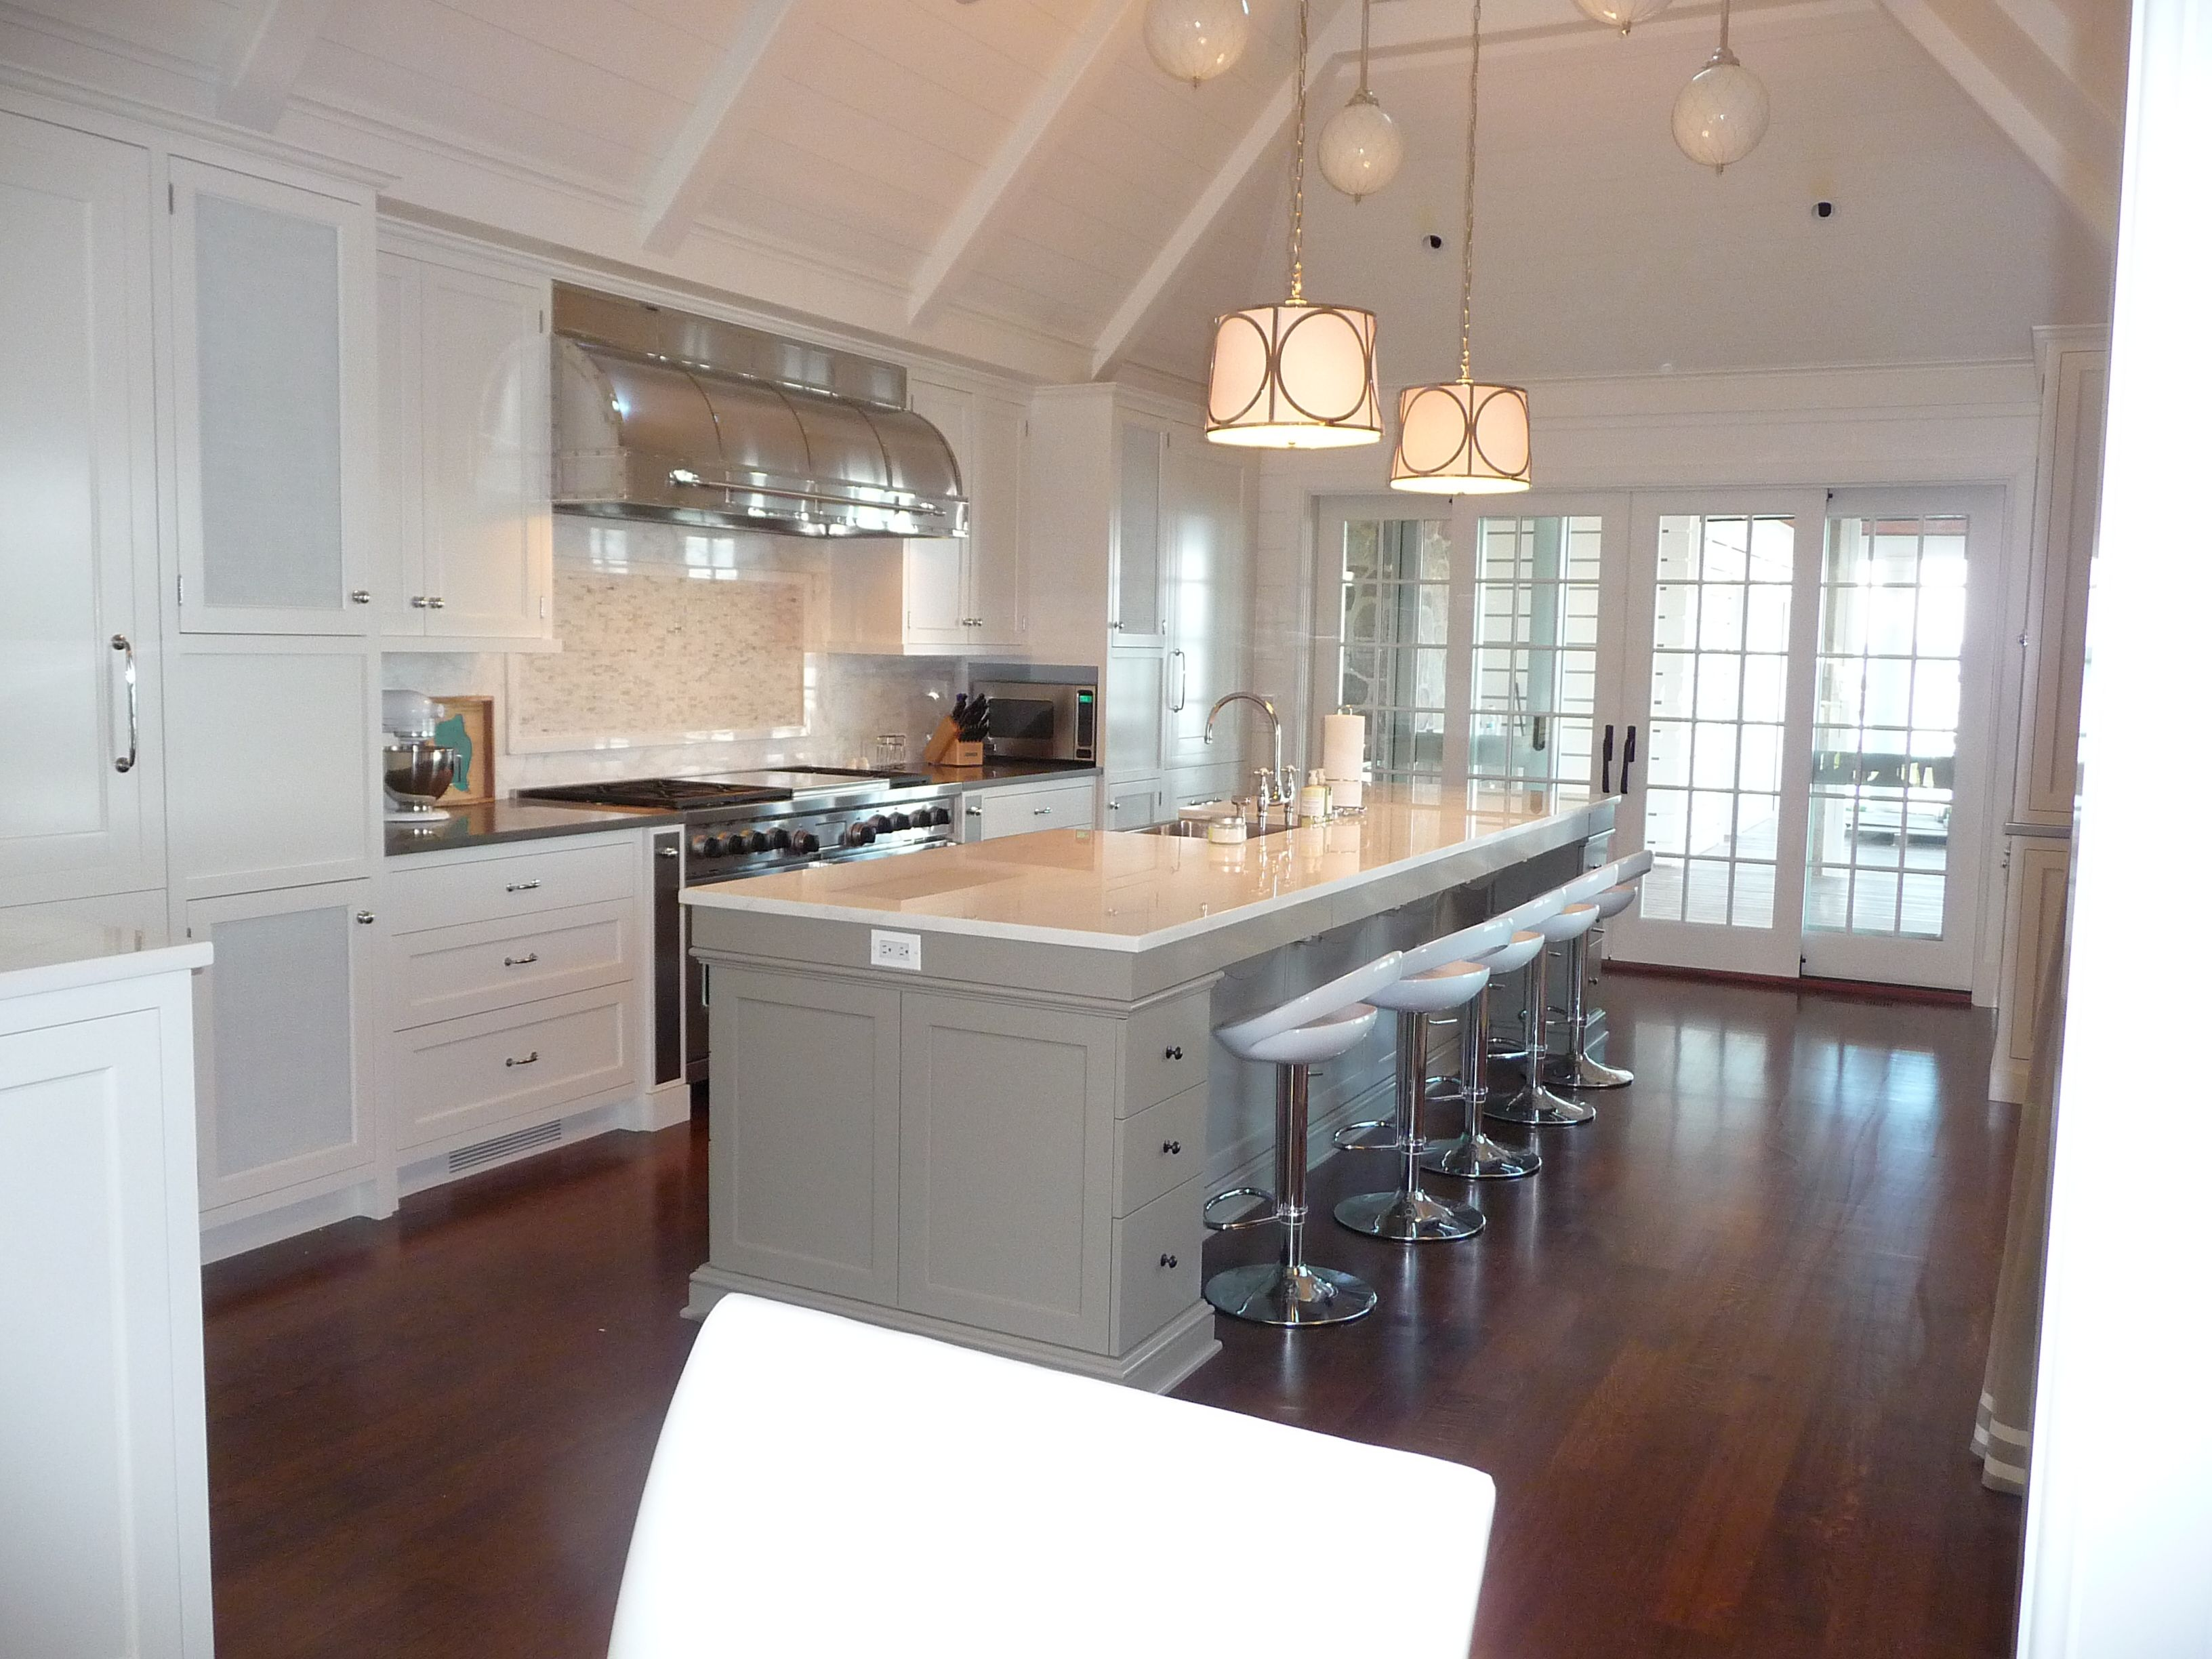 Look At The White Lake House Kitchen Lake House Kitchen Kitchen Decor Home Kitchens